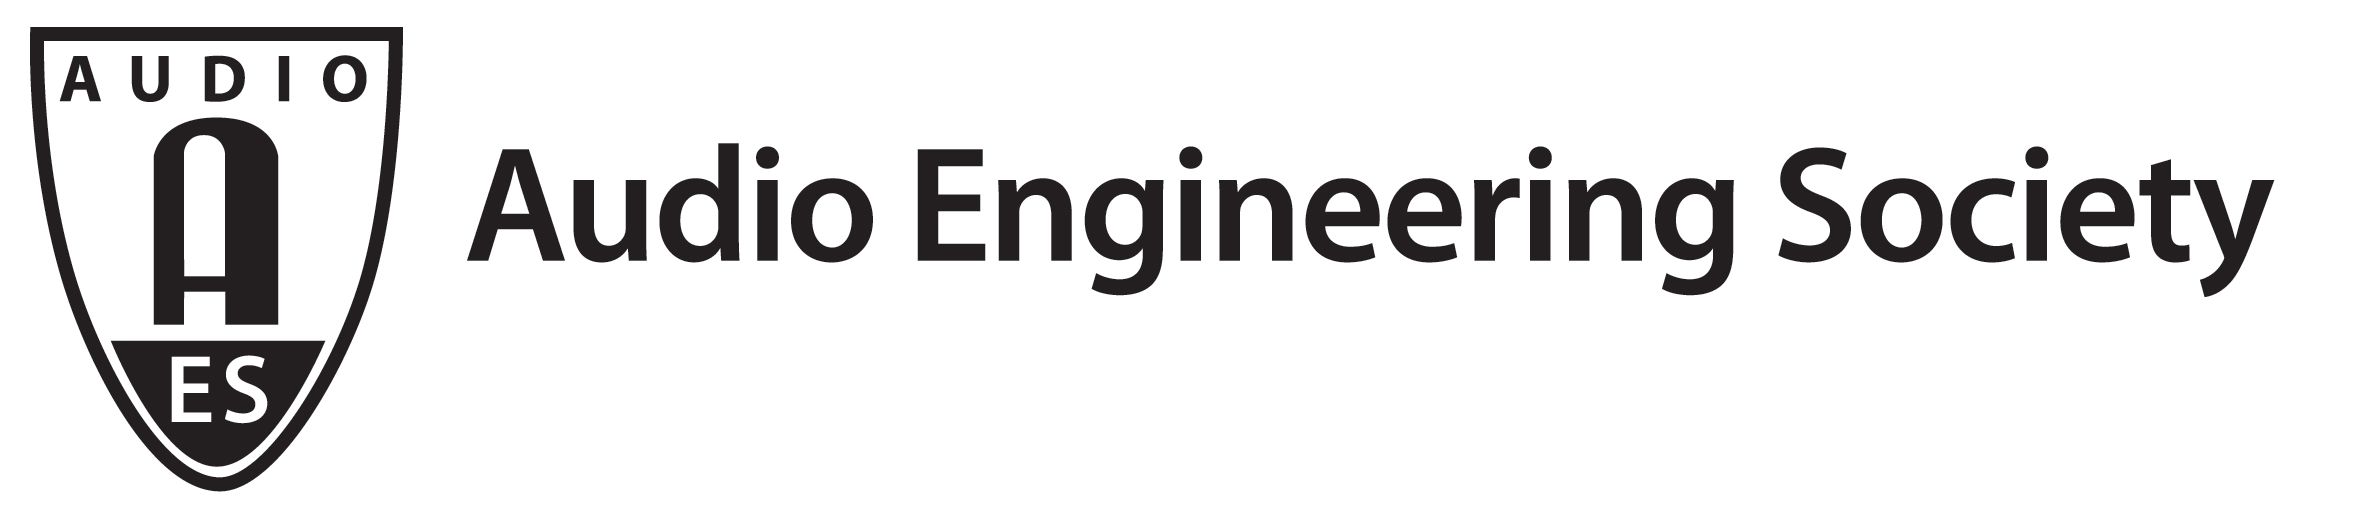 logo-aes.png